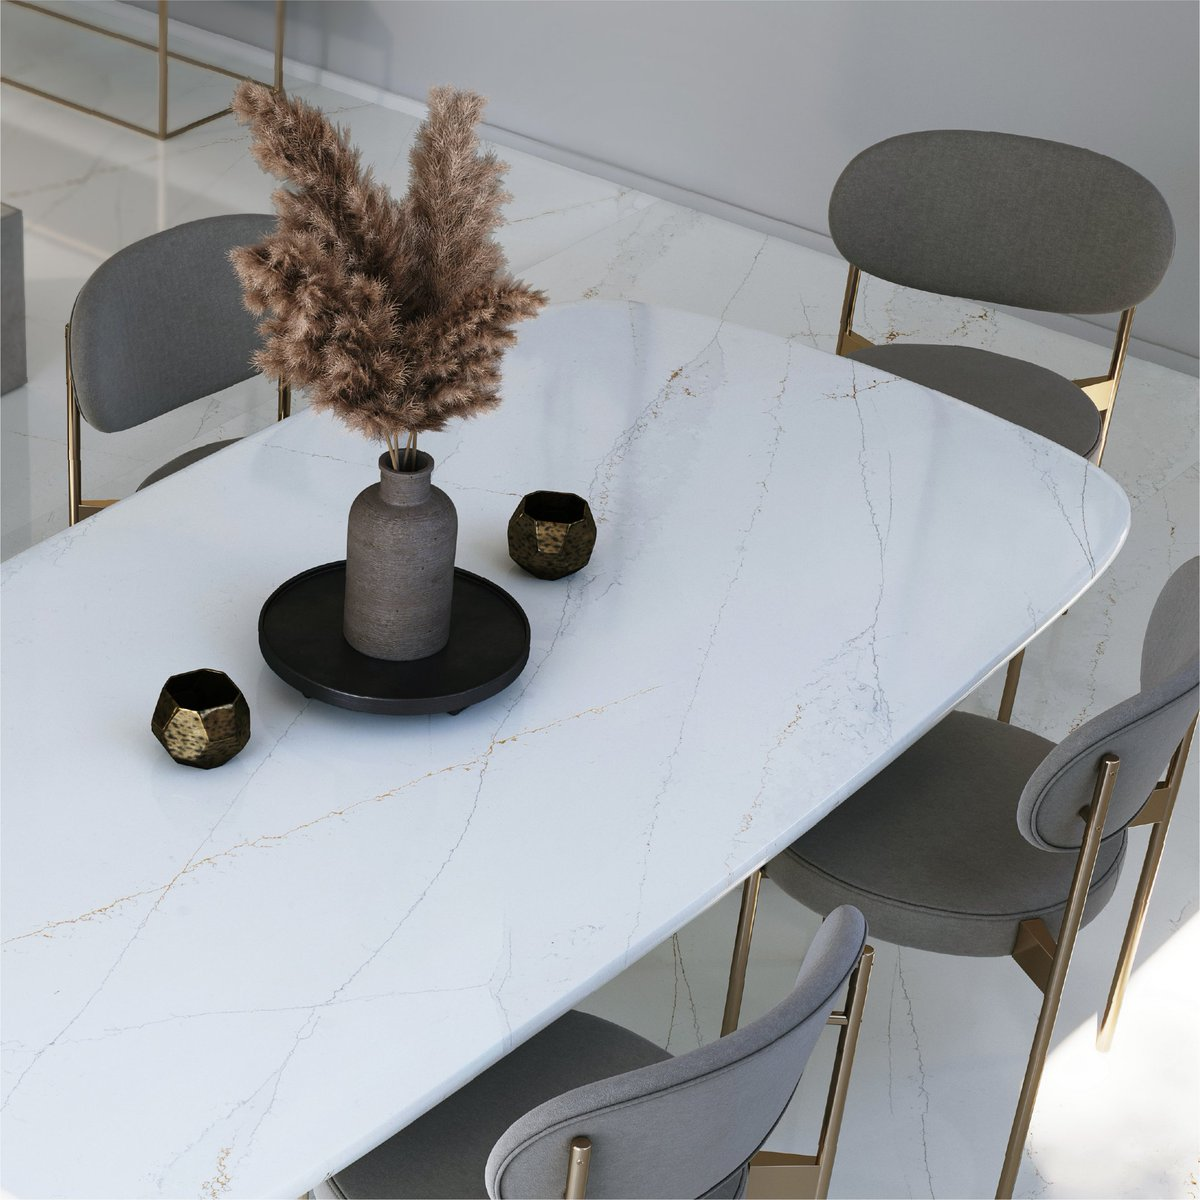 A table built sustainably and built for your life, Silestone Ethereal Glow adds serenity to every space it inhabits.   Learn more about the Ethereal Glow, made using HybriQ+ technology by visiting bit.ly/HybriqTechnolo…